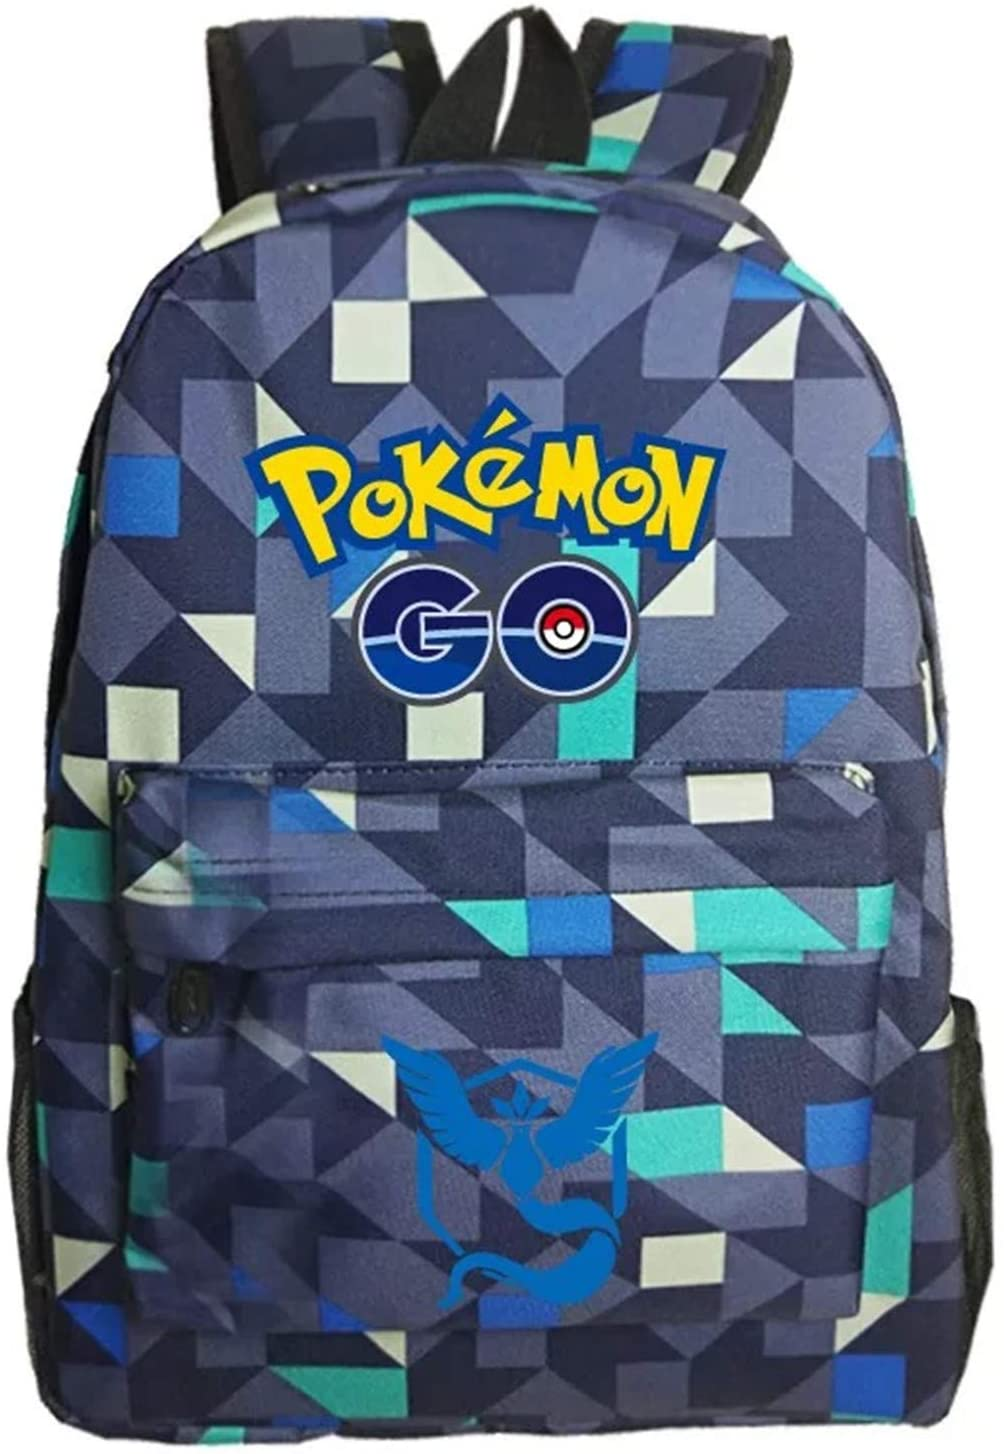 Kids Cartoon Pokemon Backpack School Rucksack Backpack for Boys Girls One Size